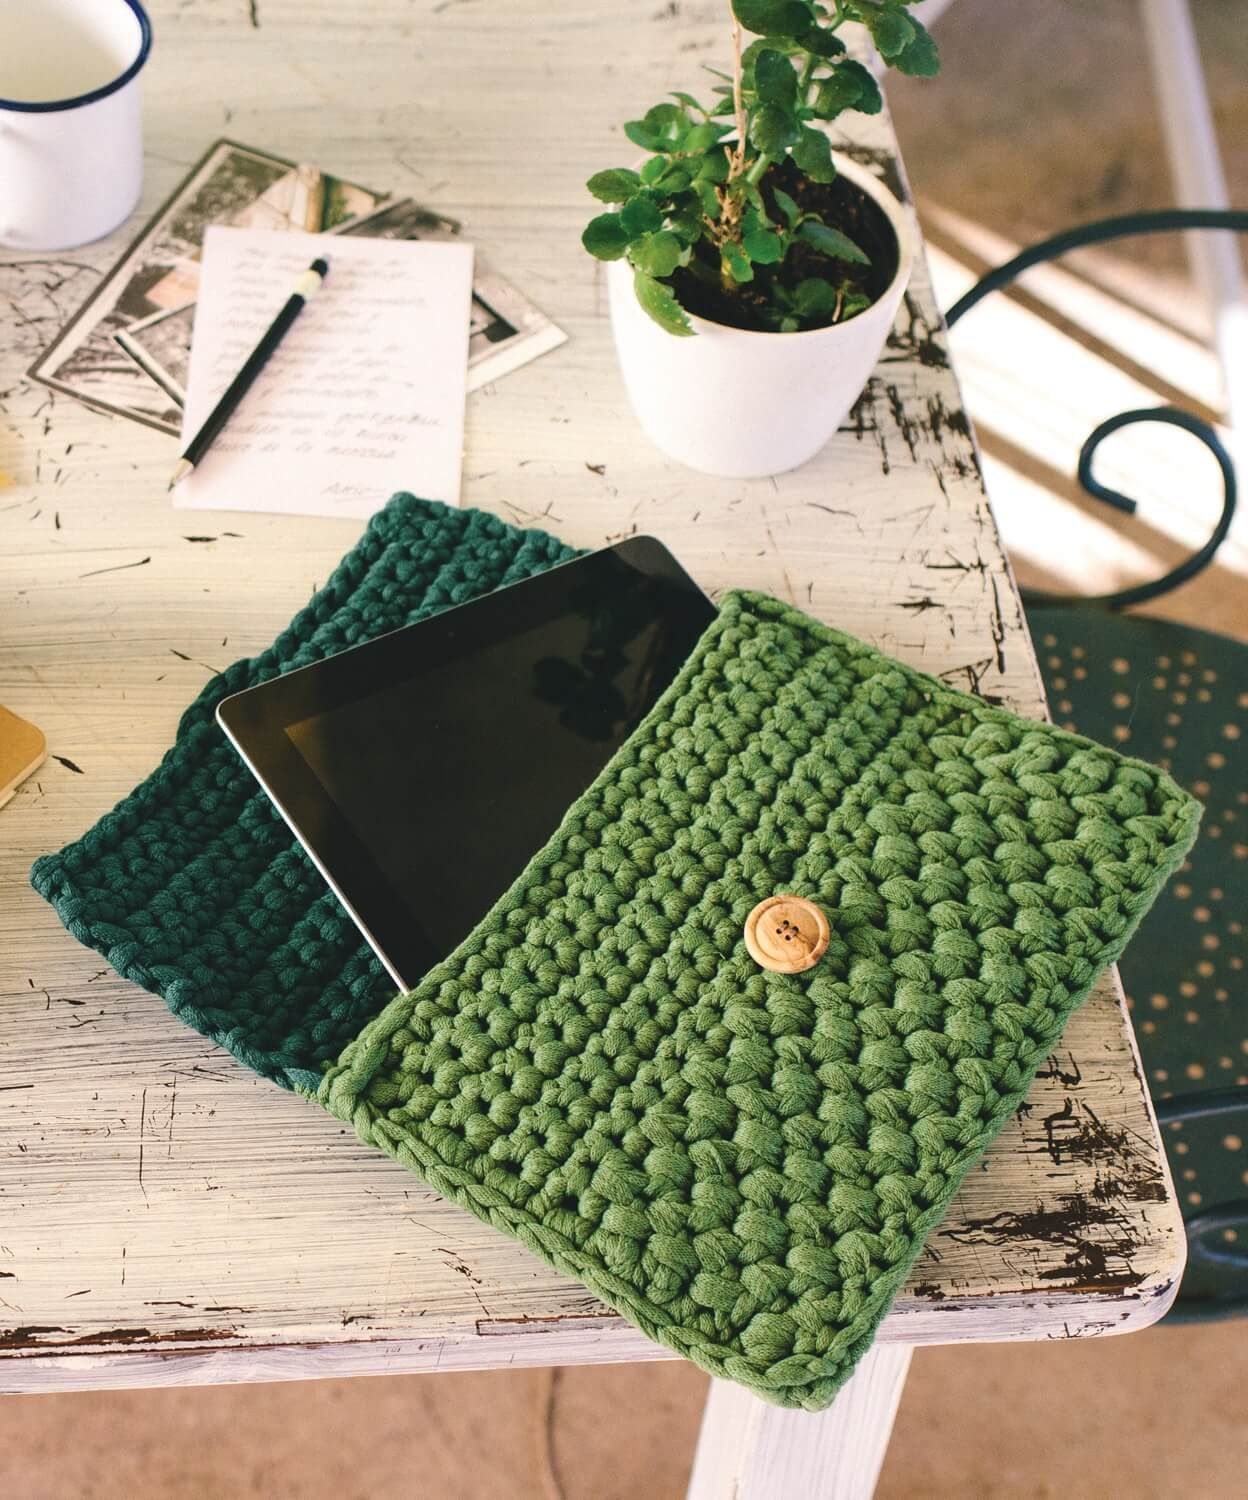 Häkelmuster Runder Teppich Gehäkelte Tablet Tasche Crochet Knitting Patterns Crochet